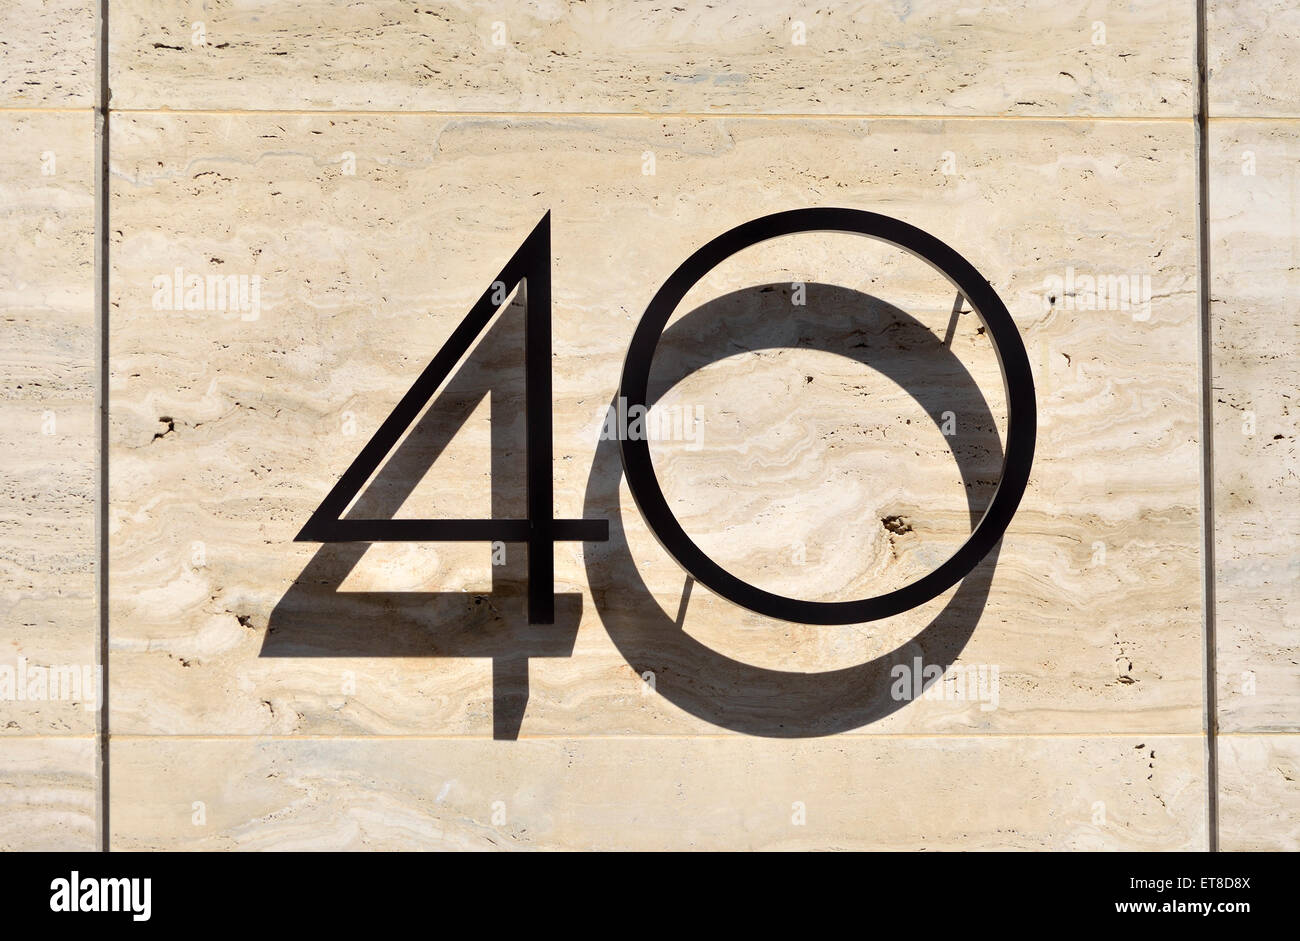 London, England, UK. Number 40 (in Chancery Lane) - Stock Image